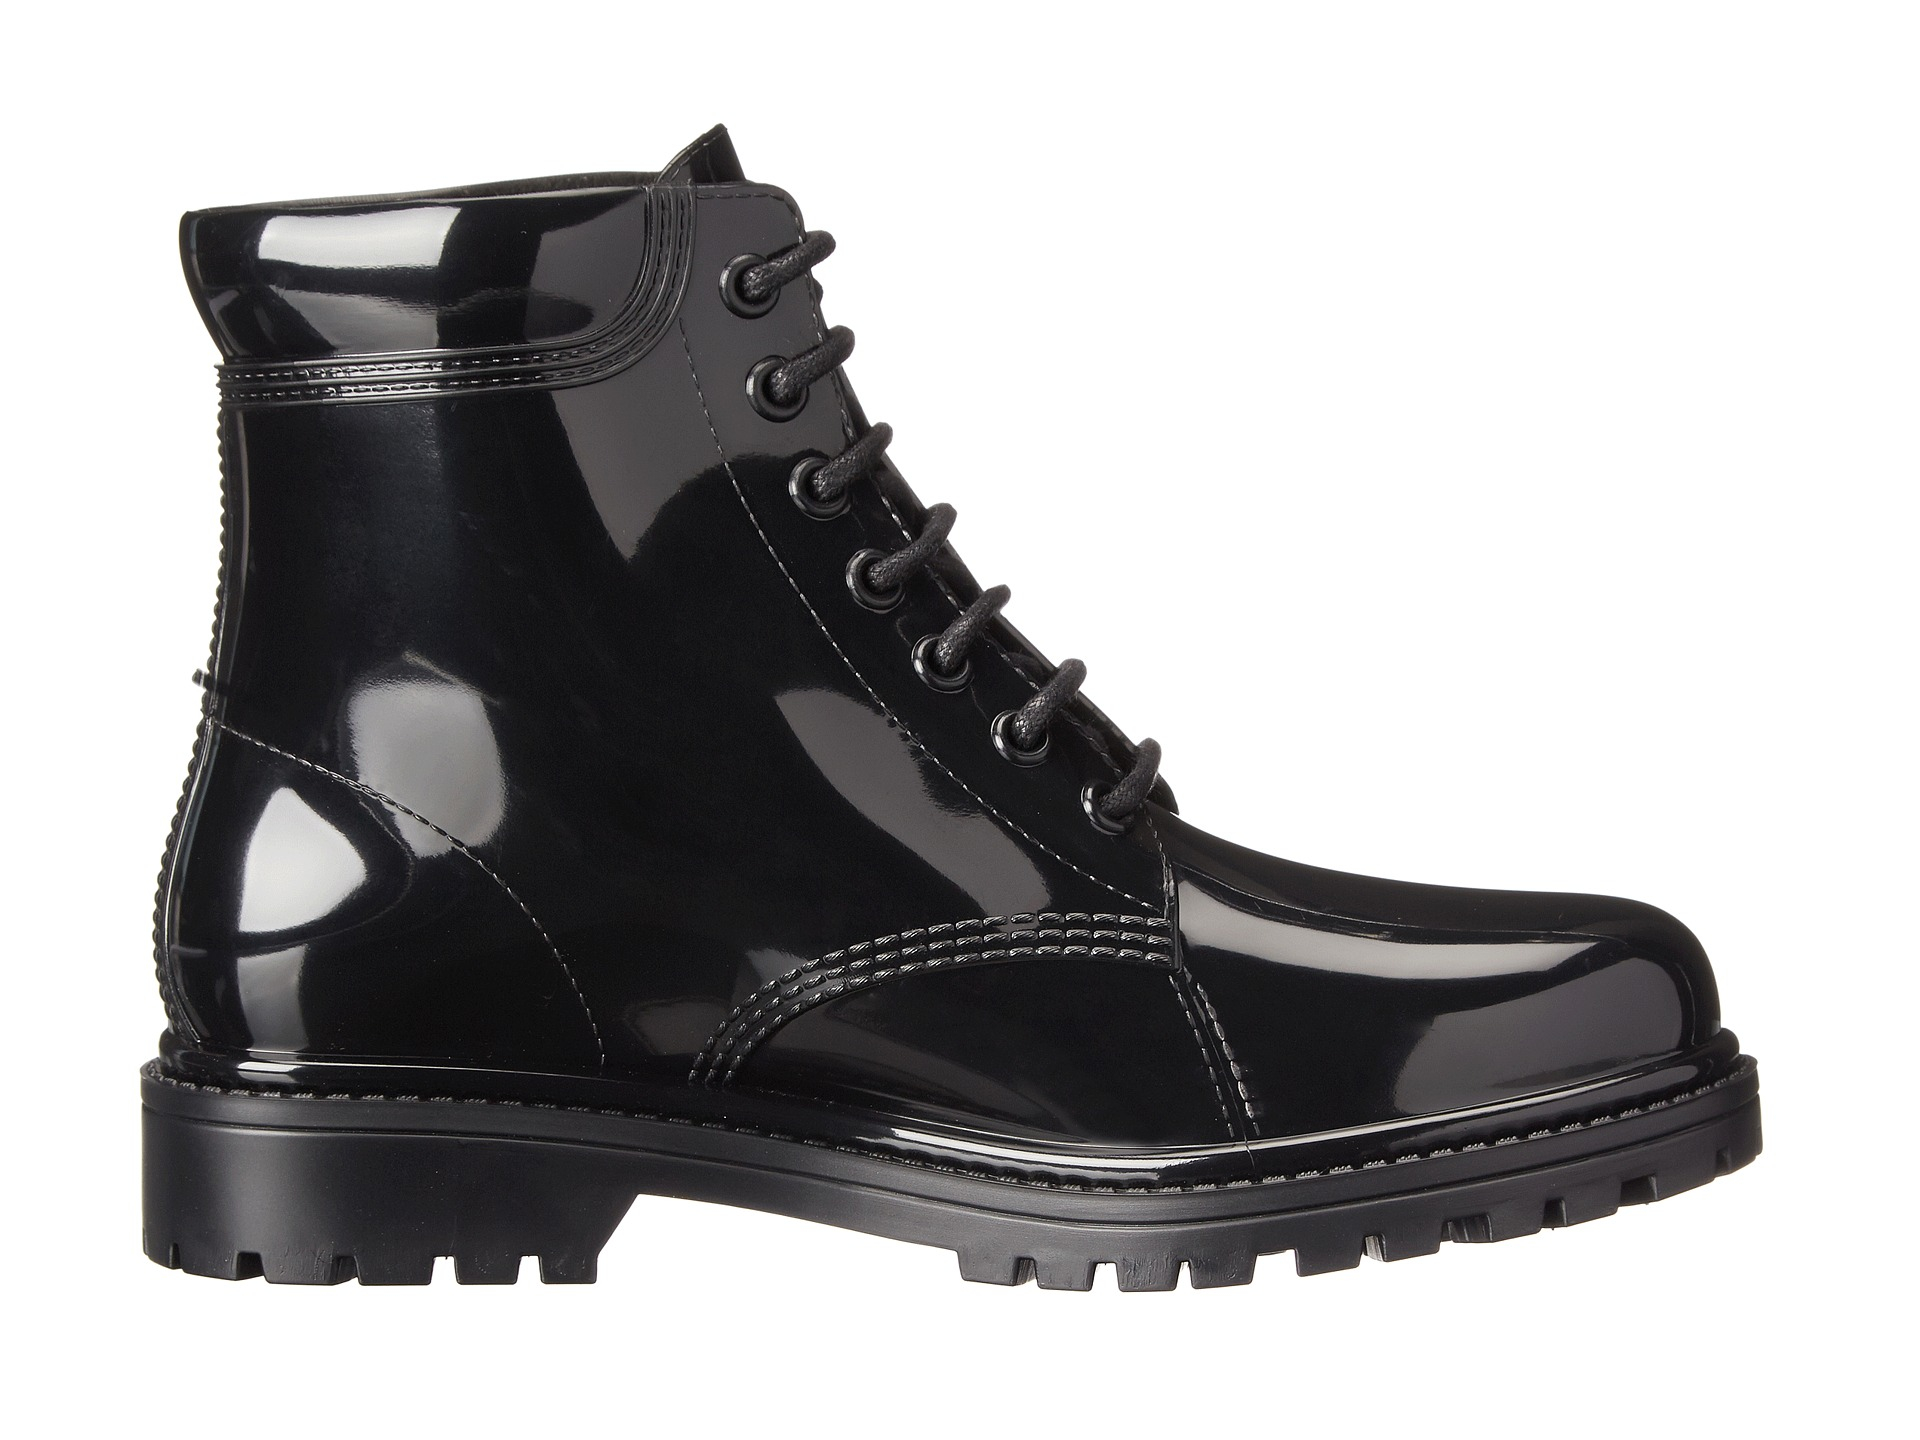 Popular For Sale lace-up boots - Black Armani Jeans Ebay ooV6W3